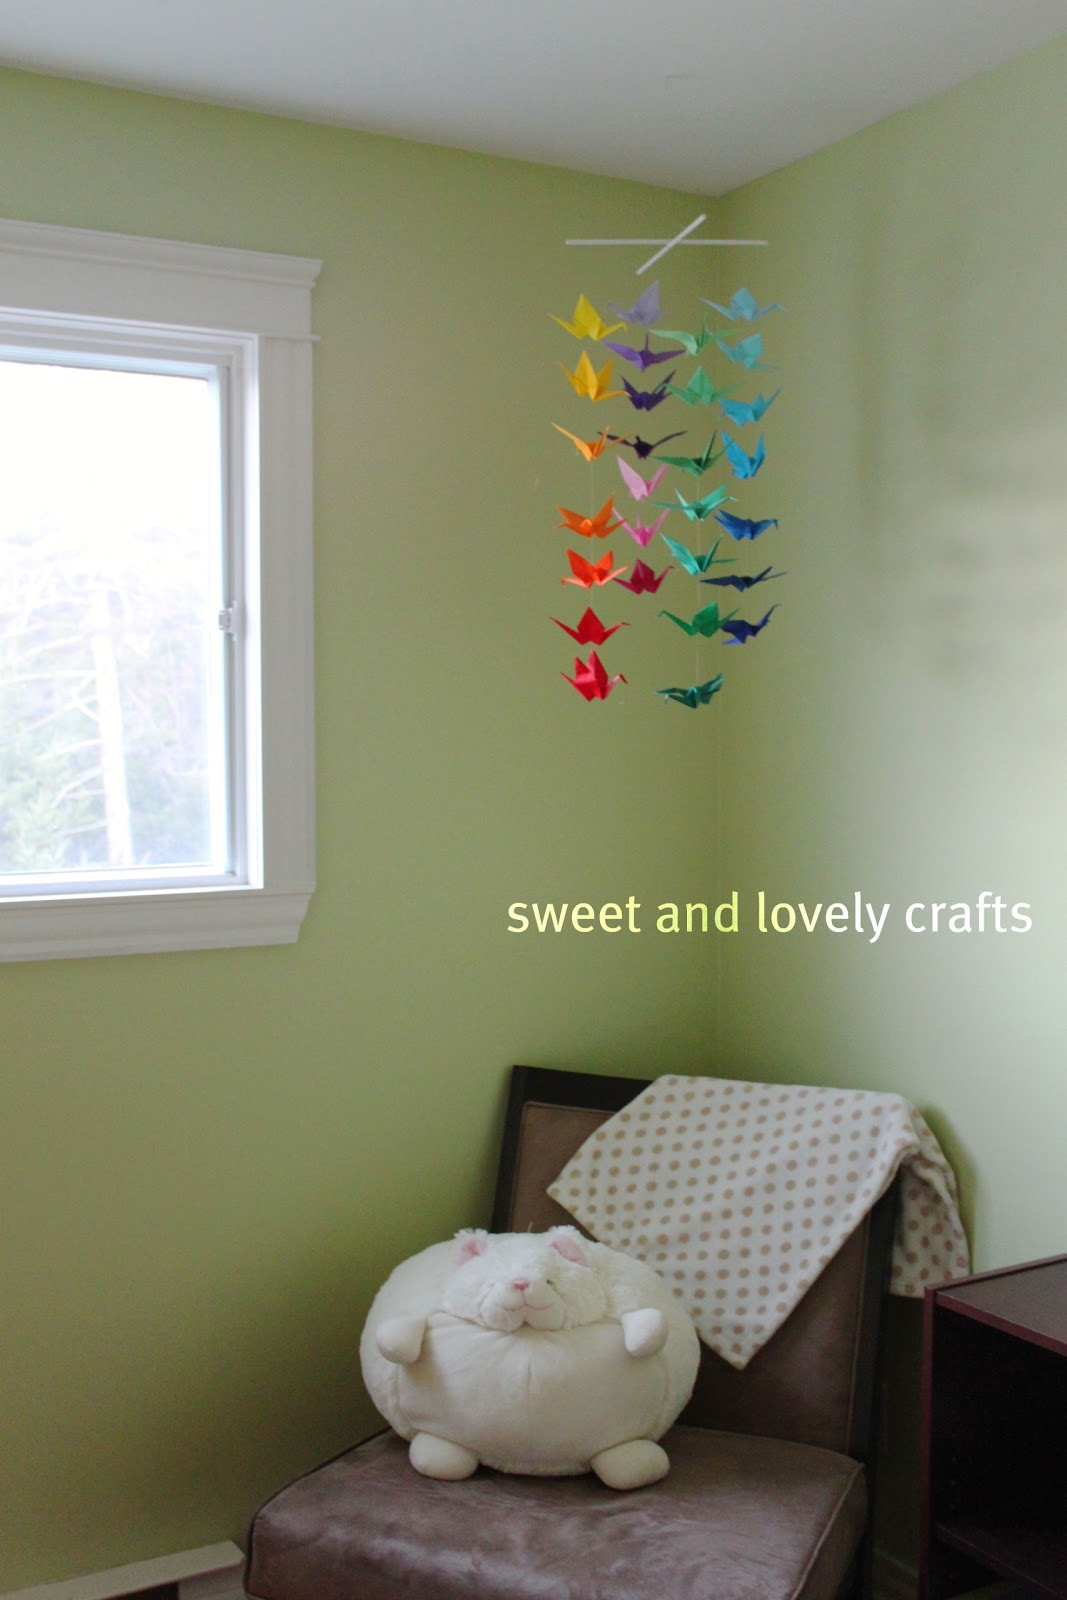 sweet and lovely crafts: origami crane mobile - photo#43